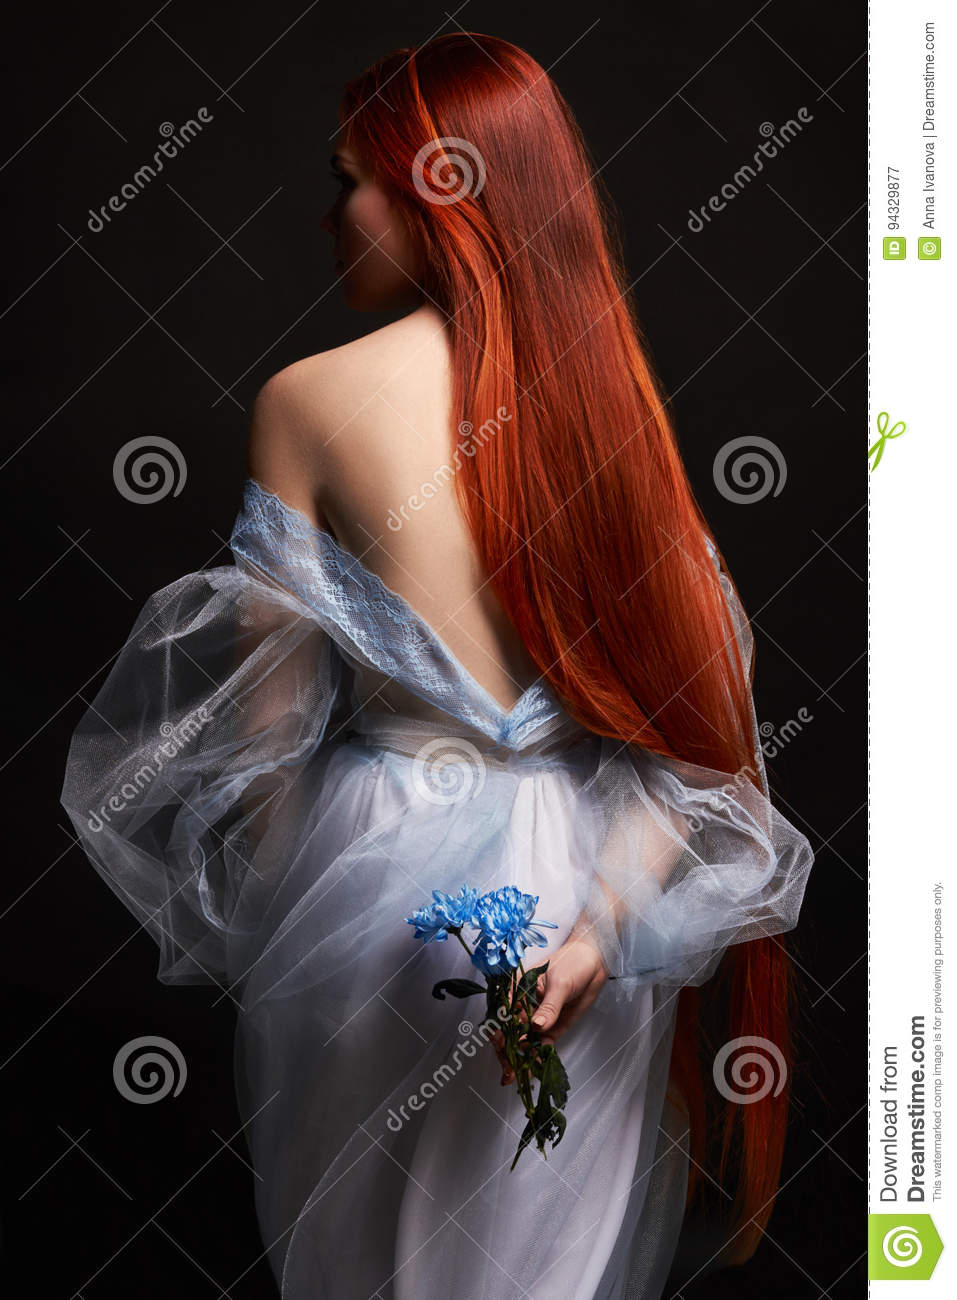 beautiful redhead girl with long hair in dress cotton retro. Woman portrait on black background. Deep eyes. Natural beauty